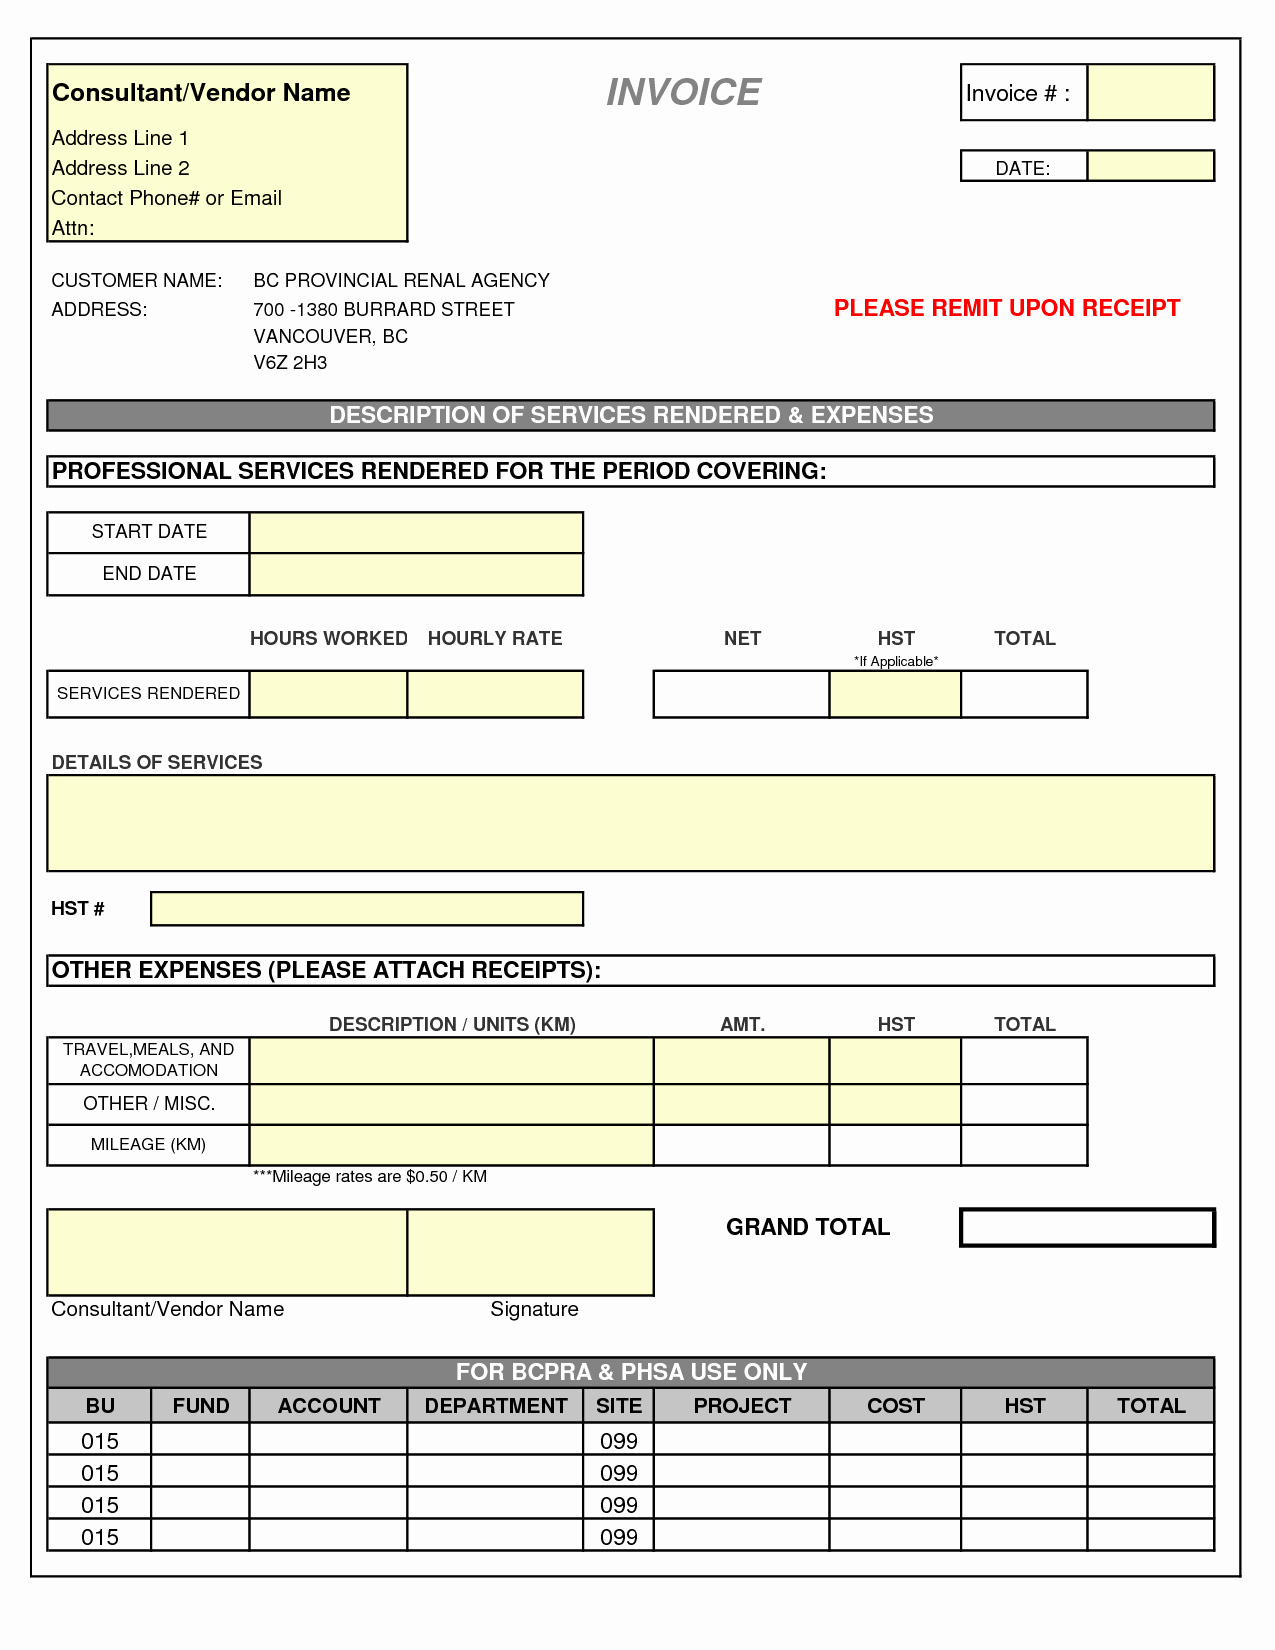 Invoice Template for Consulting Services Lovely Consultant Invoice Template Doc